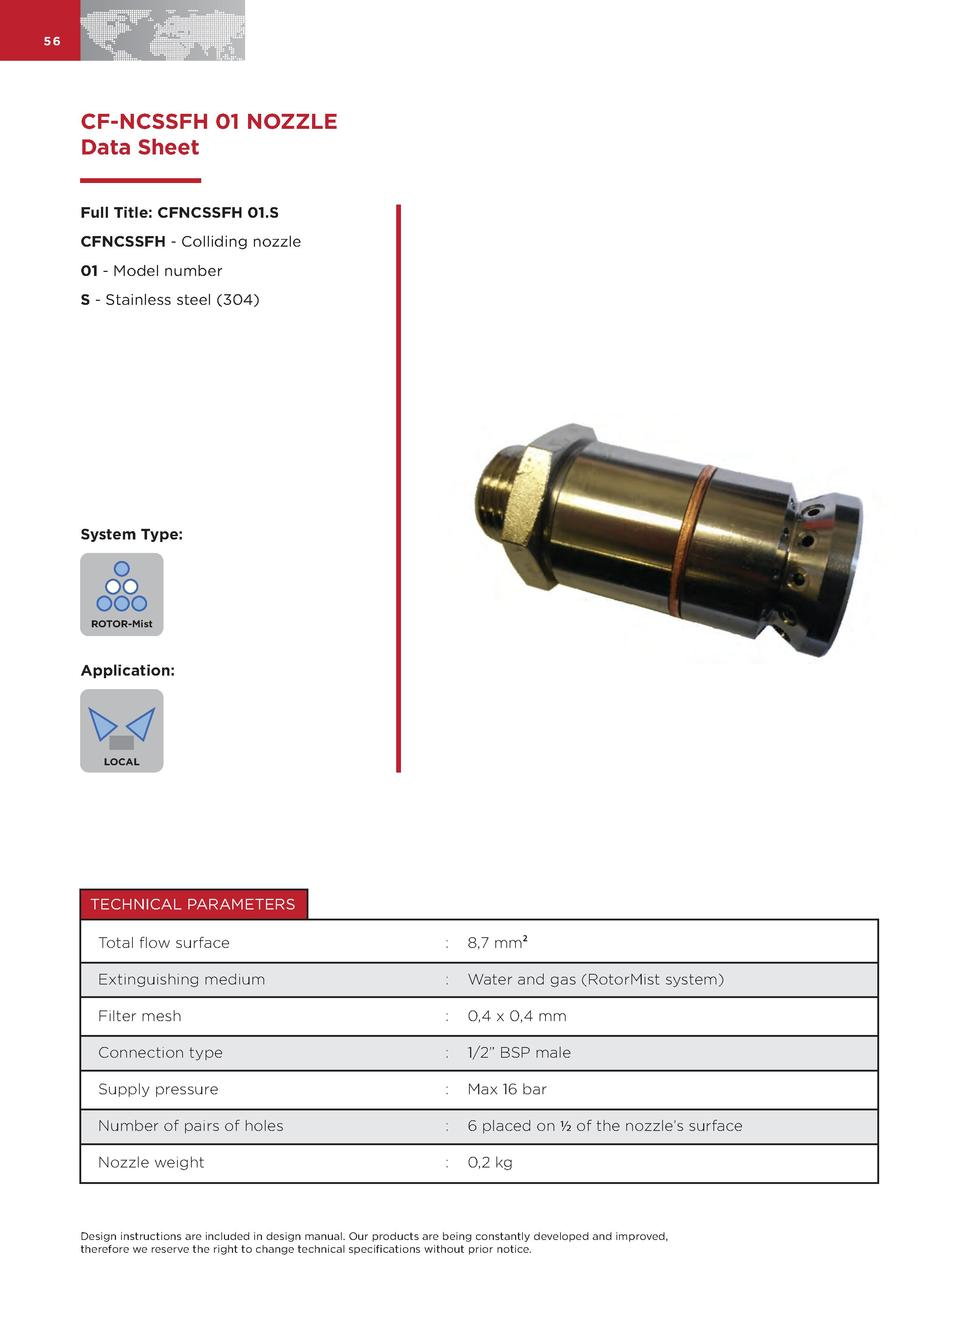 56  CF-NCSSFH 01 NOZZLE Data Sheet Full Title  CFNCSSFH 01.S CFNCSSFH - Colliding nozzle 01 - Model number S - Stainless s...